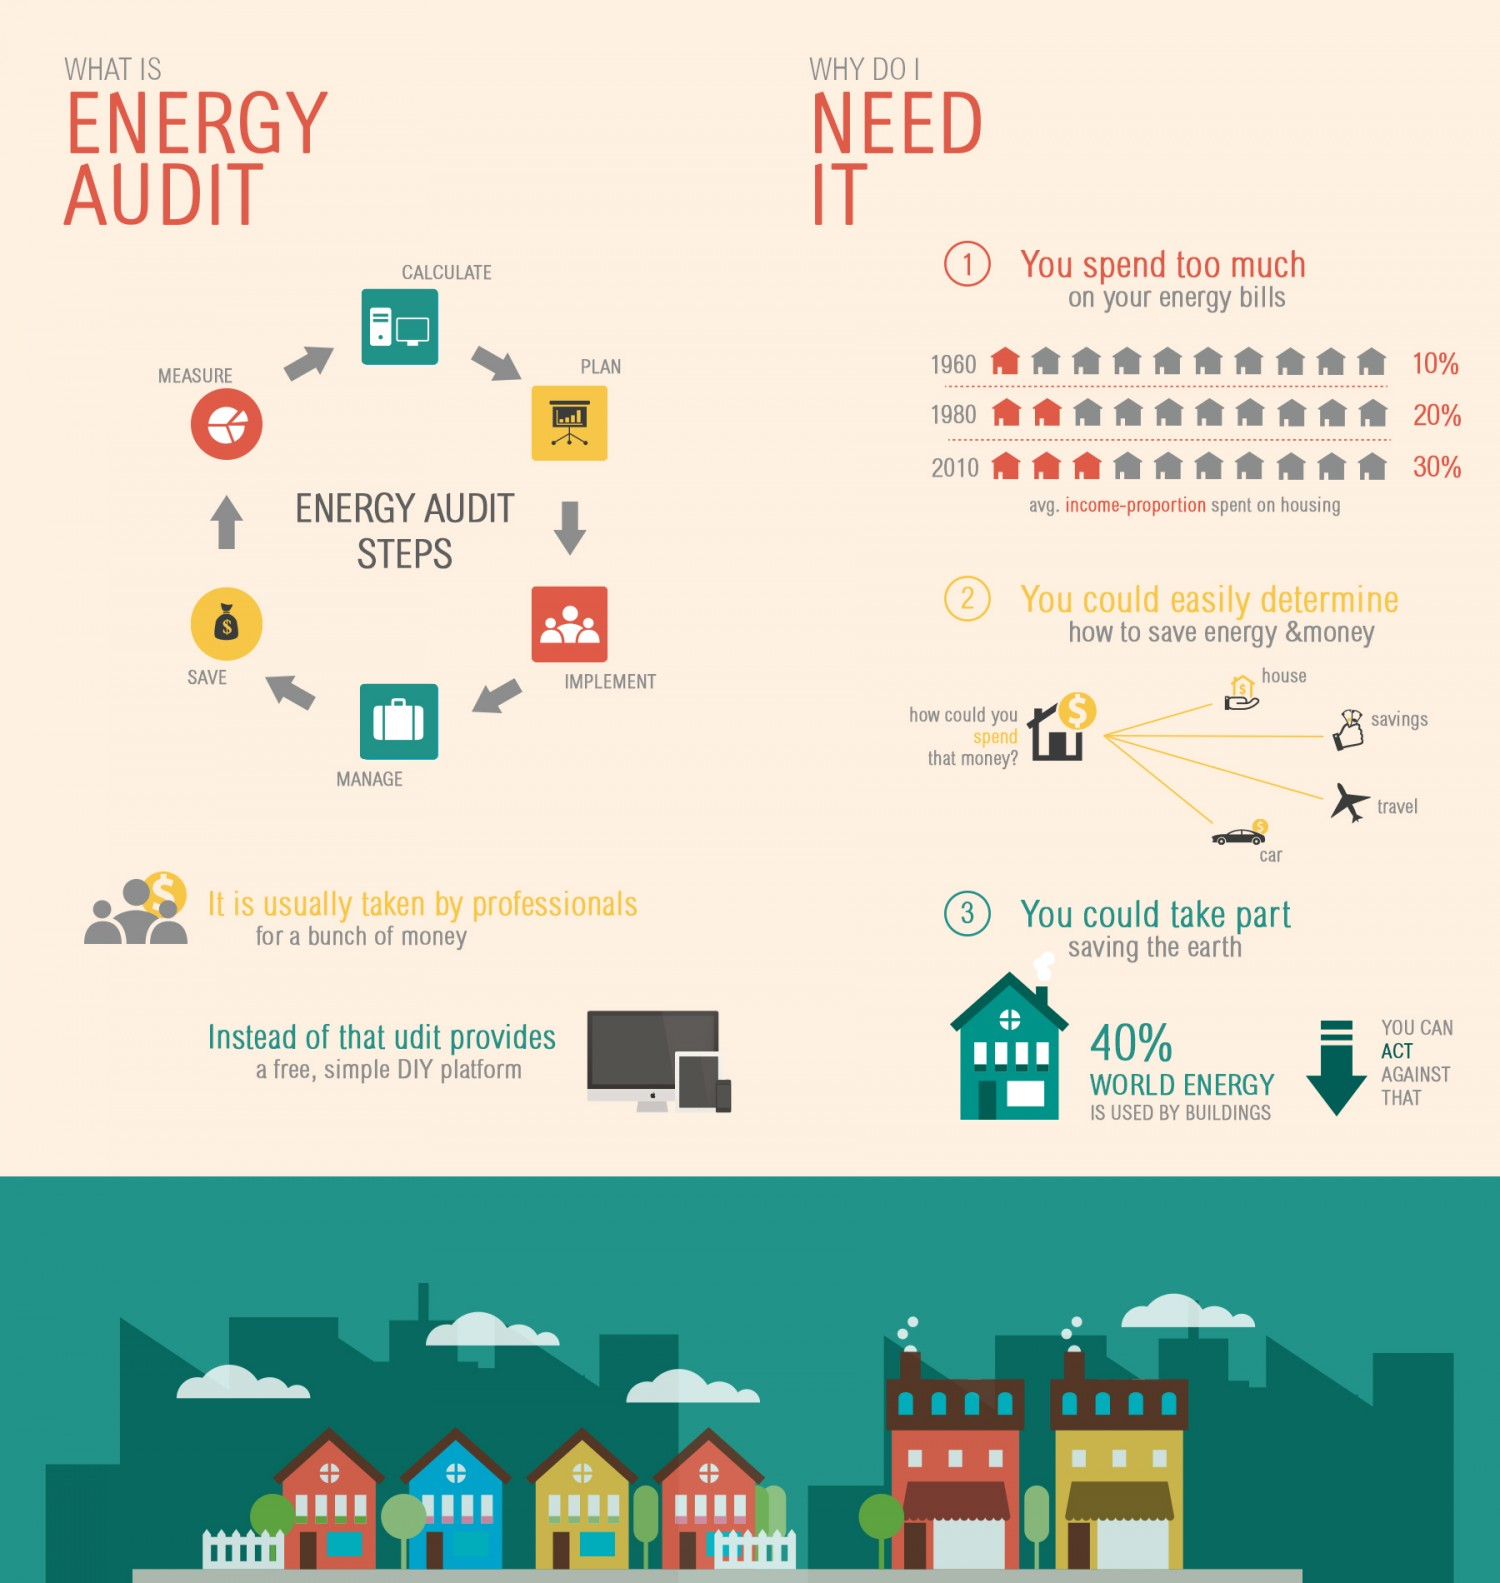 Howard Air - Energy Audit Infographic